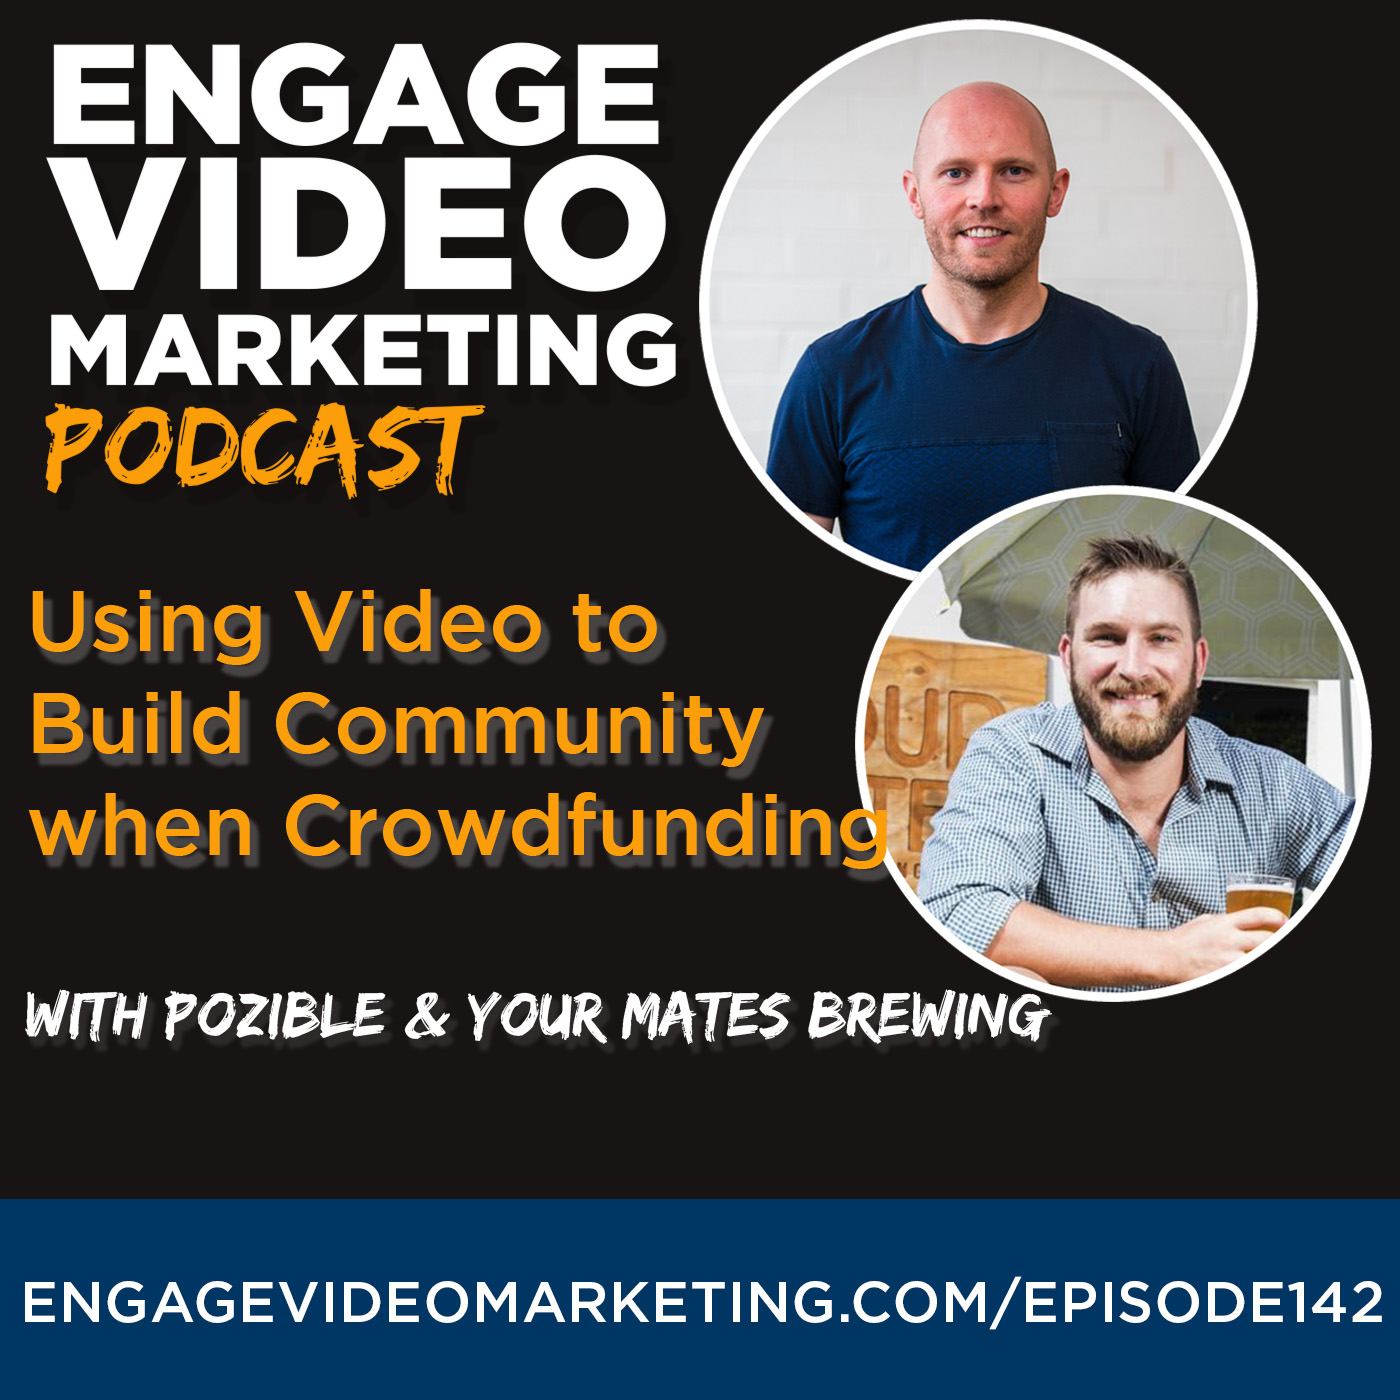 Using Video to Build Community when Crowdfunding with Pozible & Your Mates Brewing